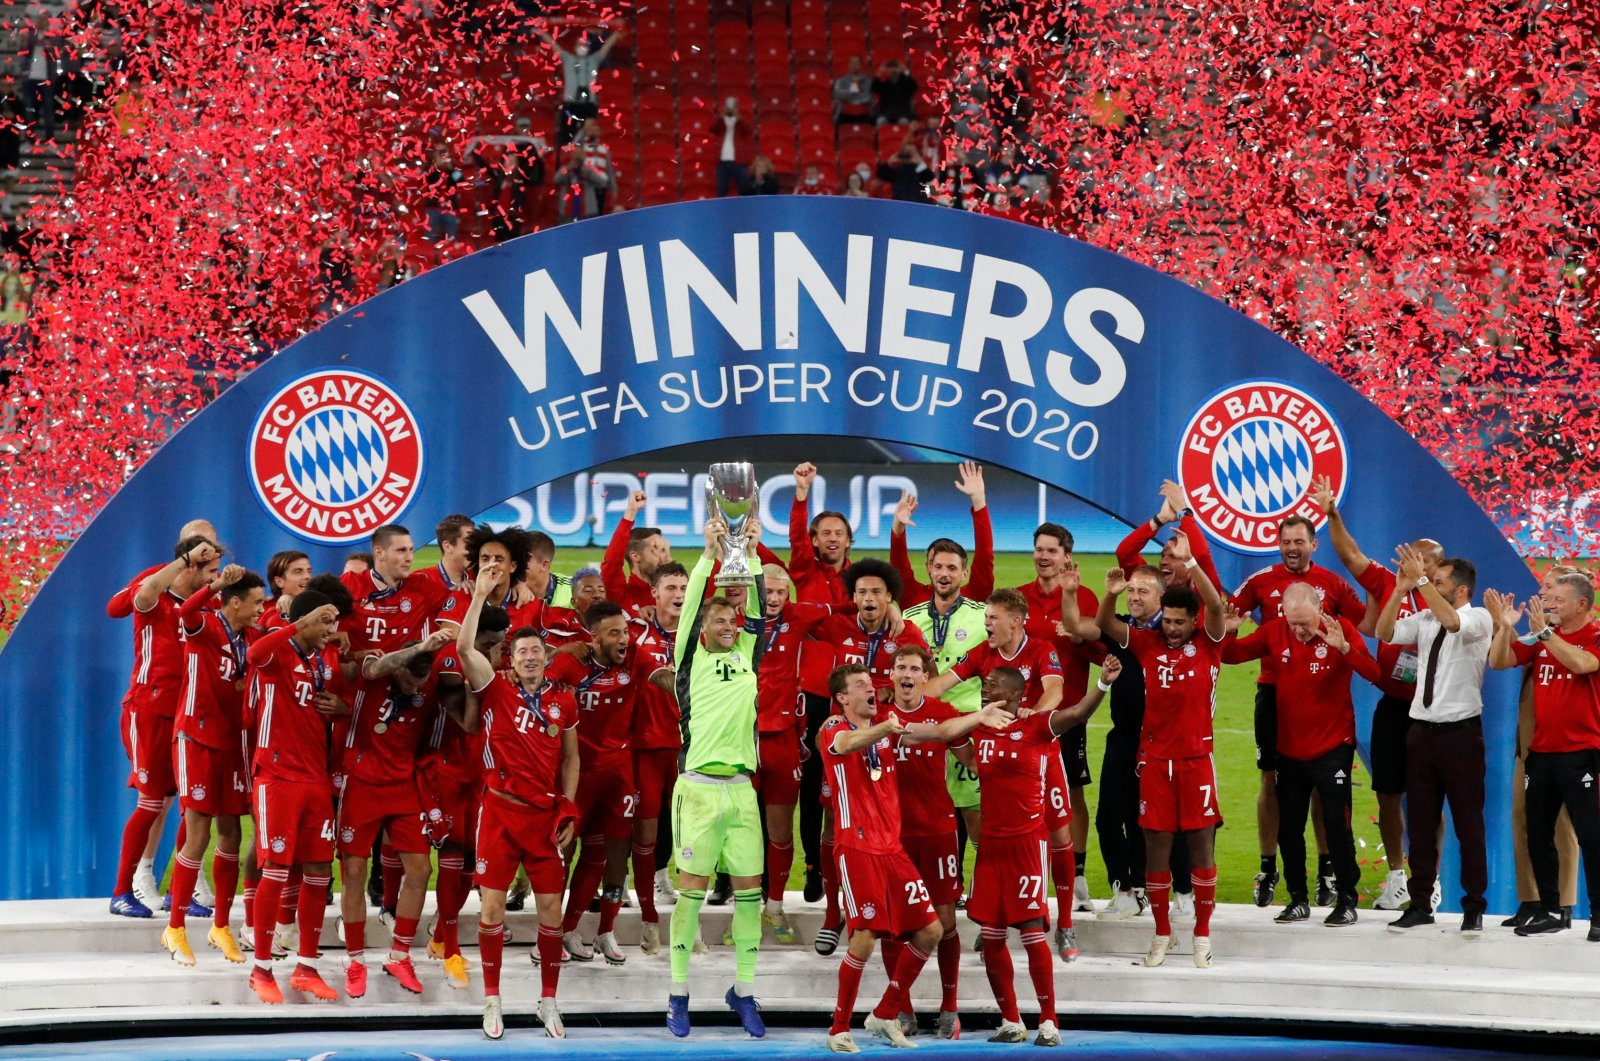 Bayern Munich's Manuel Neuer lifts the trophy with his teammates as they celebrate after winning the UEFA Super Cup match against Sevilla, in Budapest, Hungary, Sept. 24, 2020. (AFP Photo)